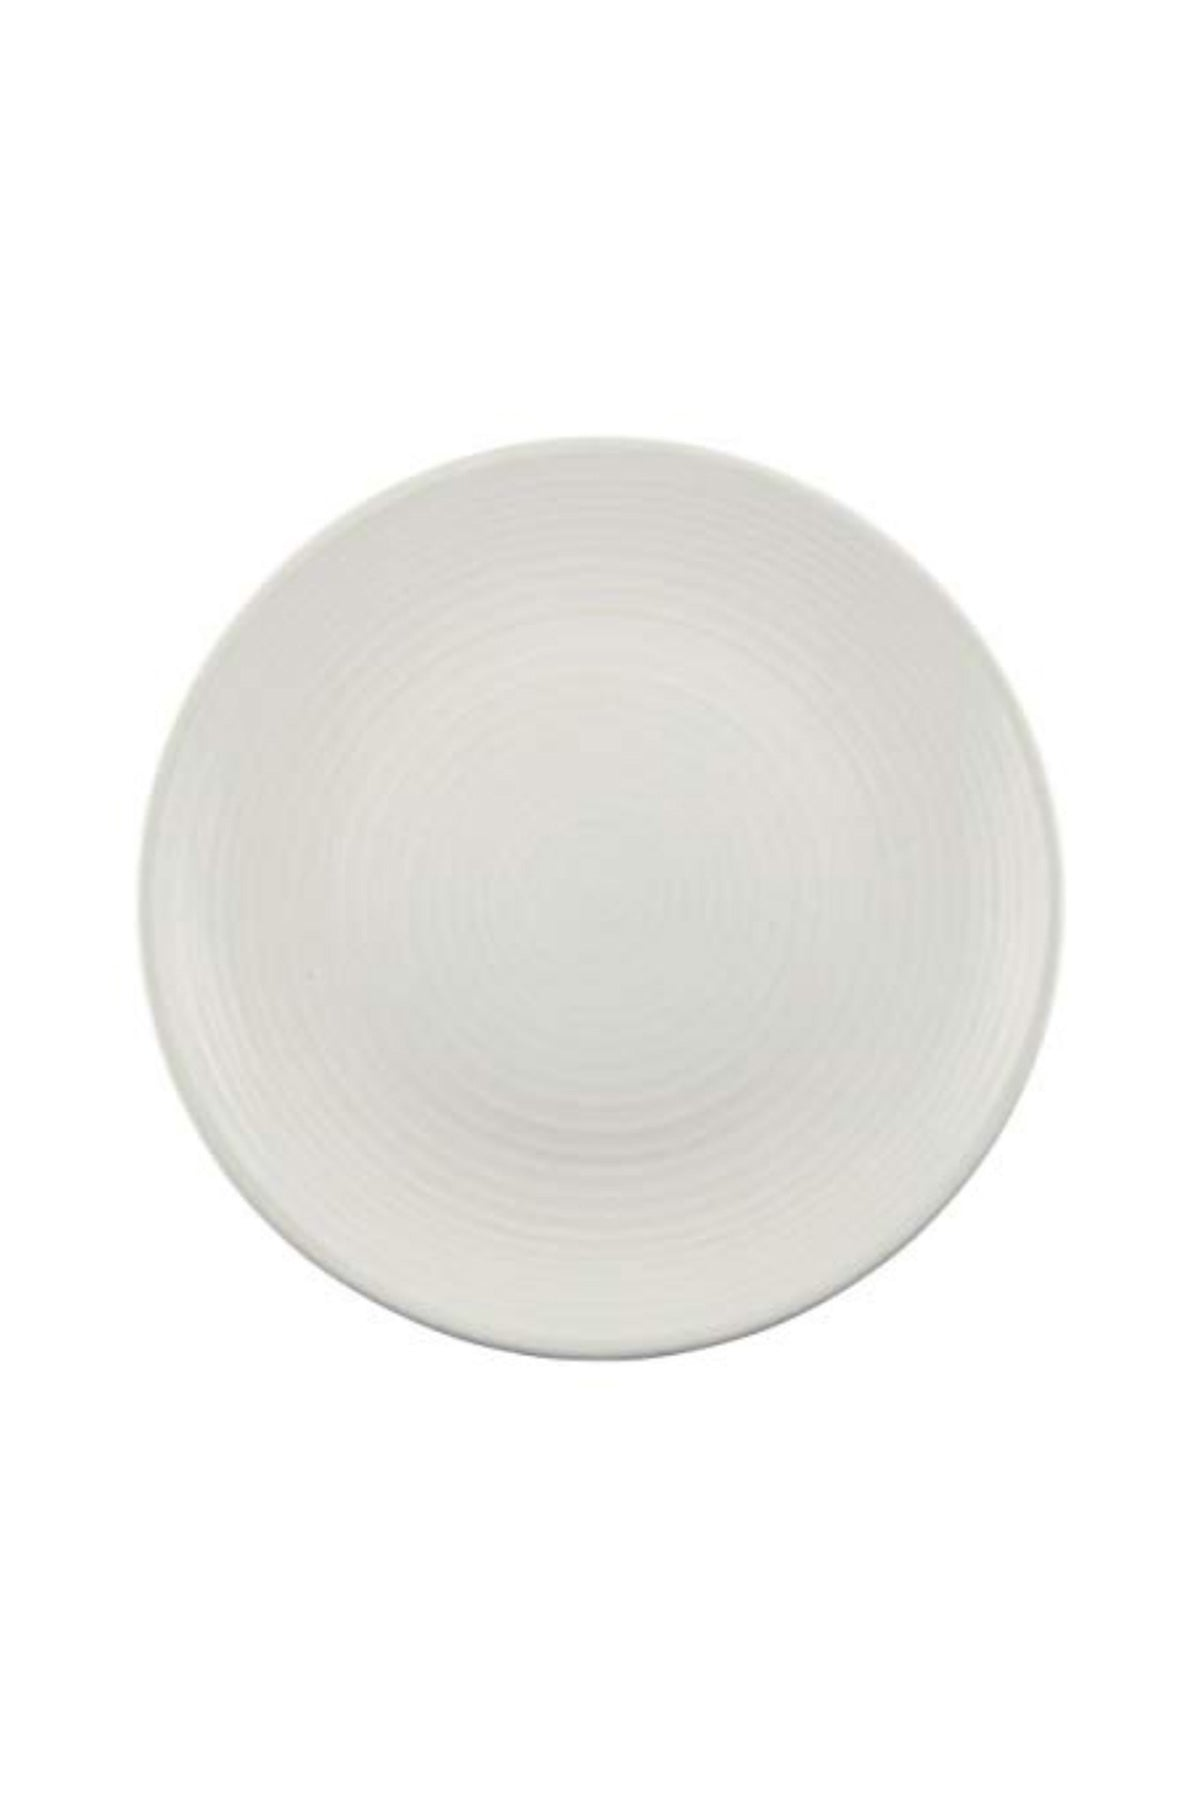 China plate and cutlery